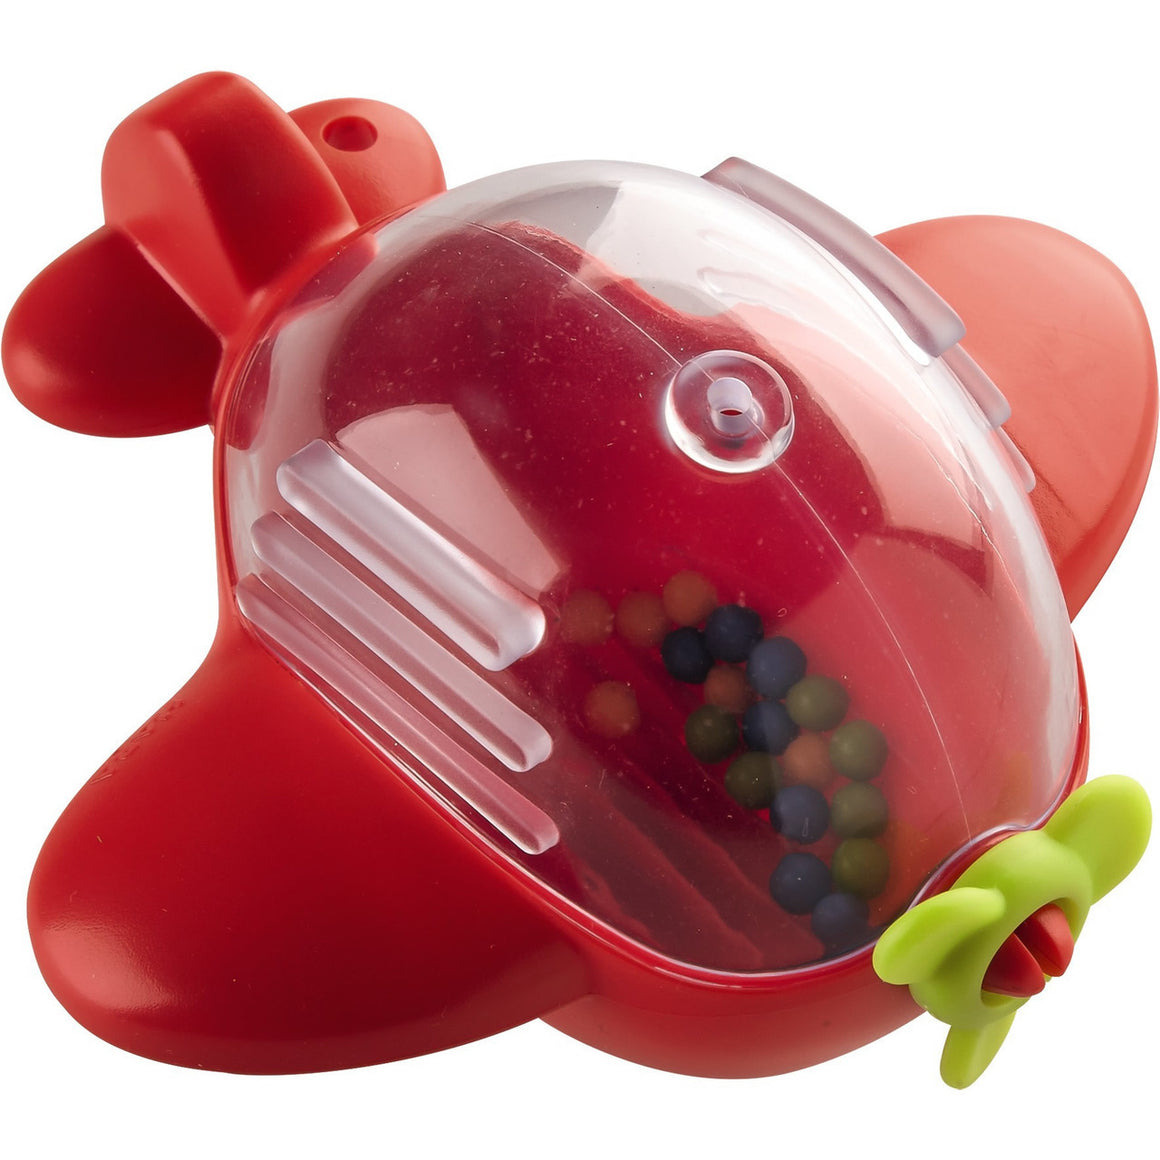 Haba Bathtub Airplane is red with a green propeller and a see thru plastic top with beads